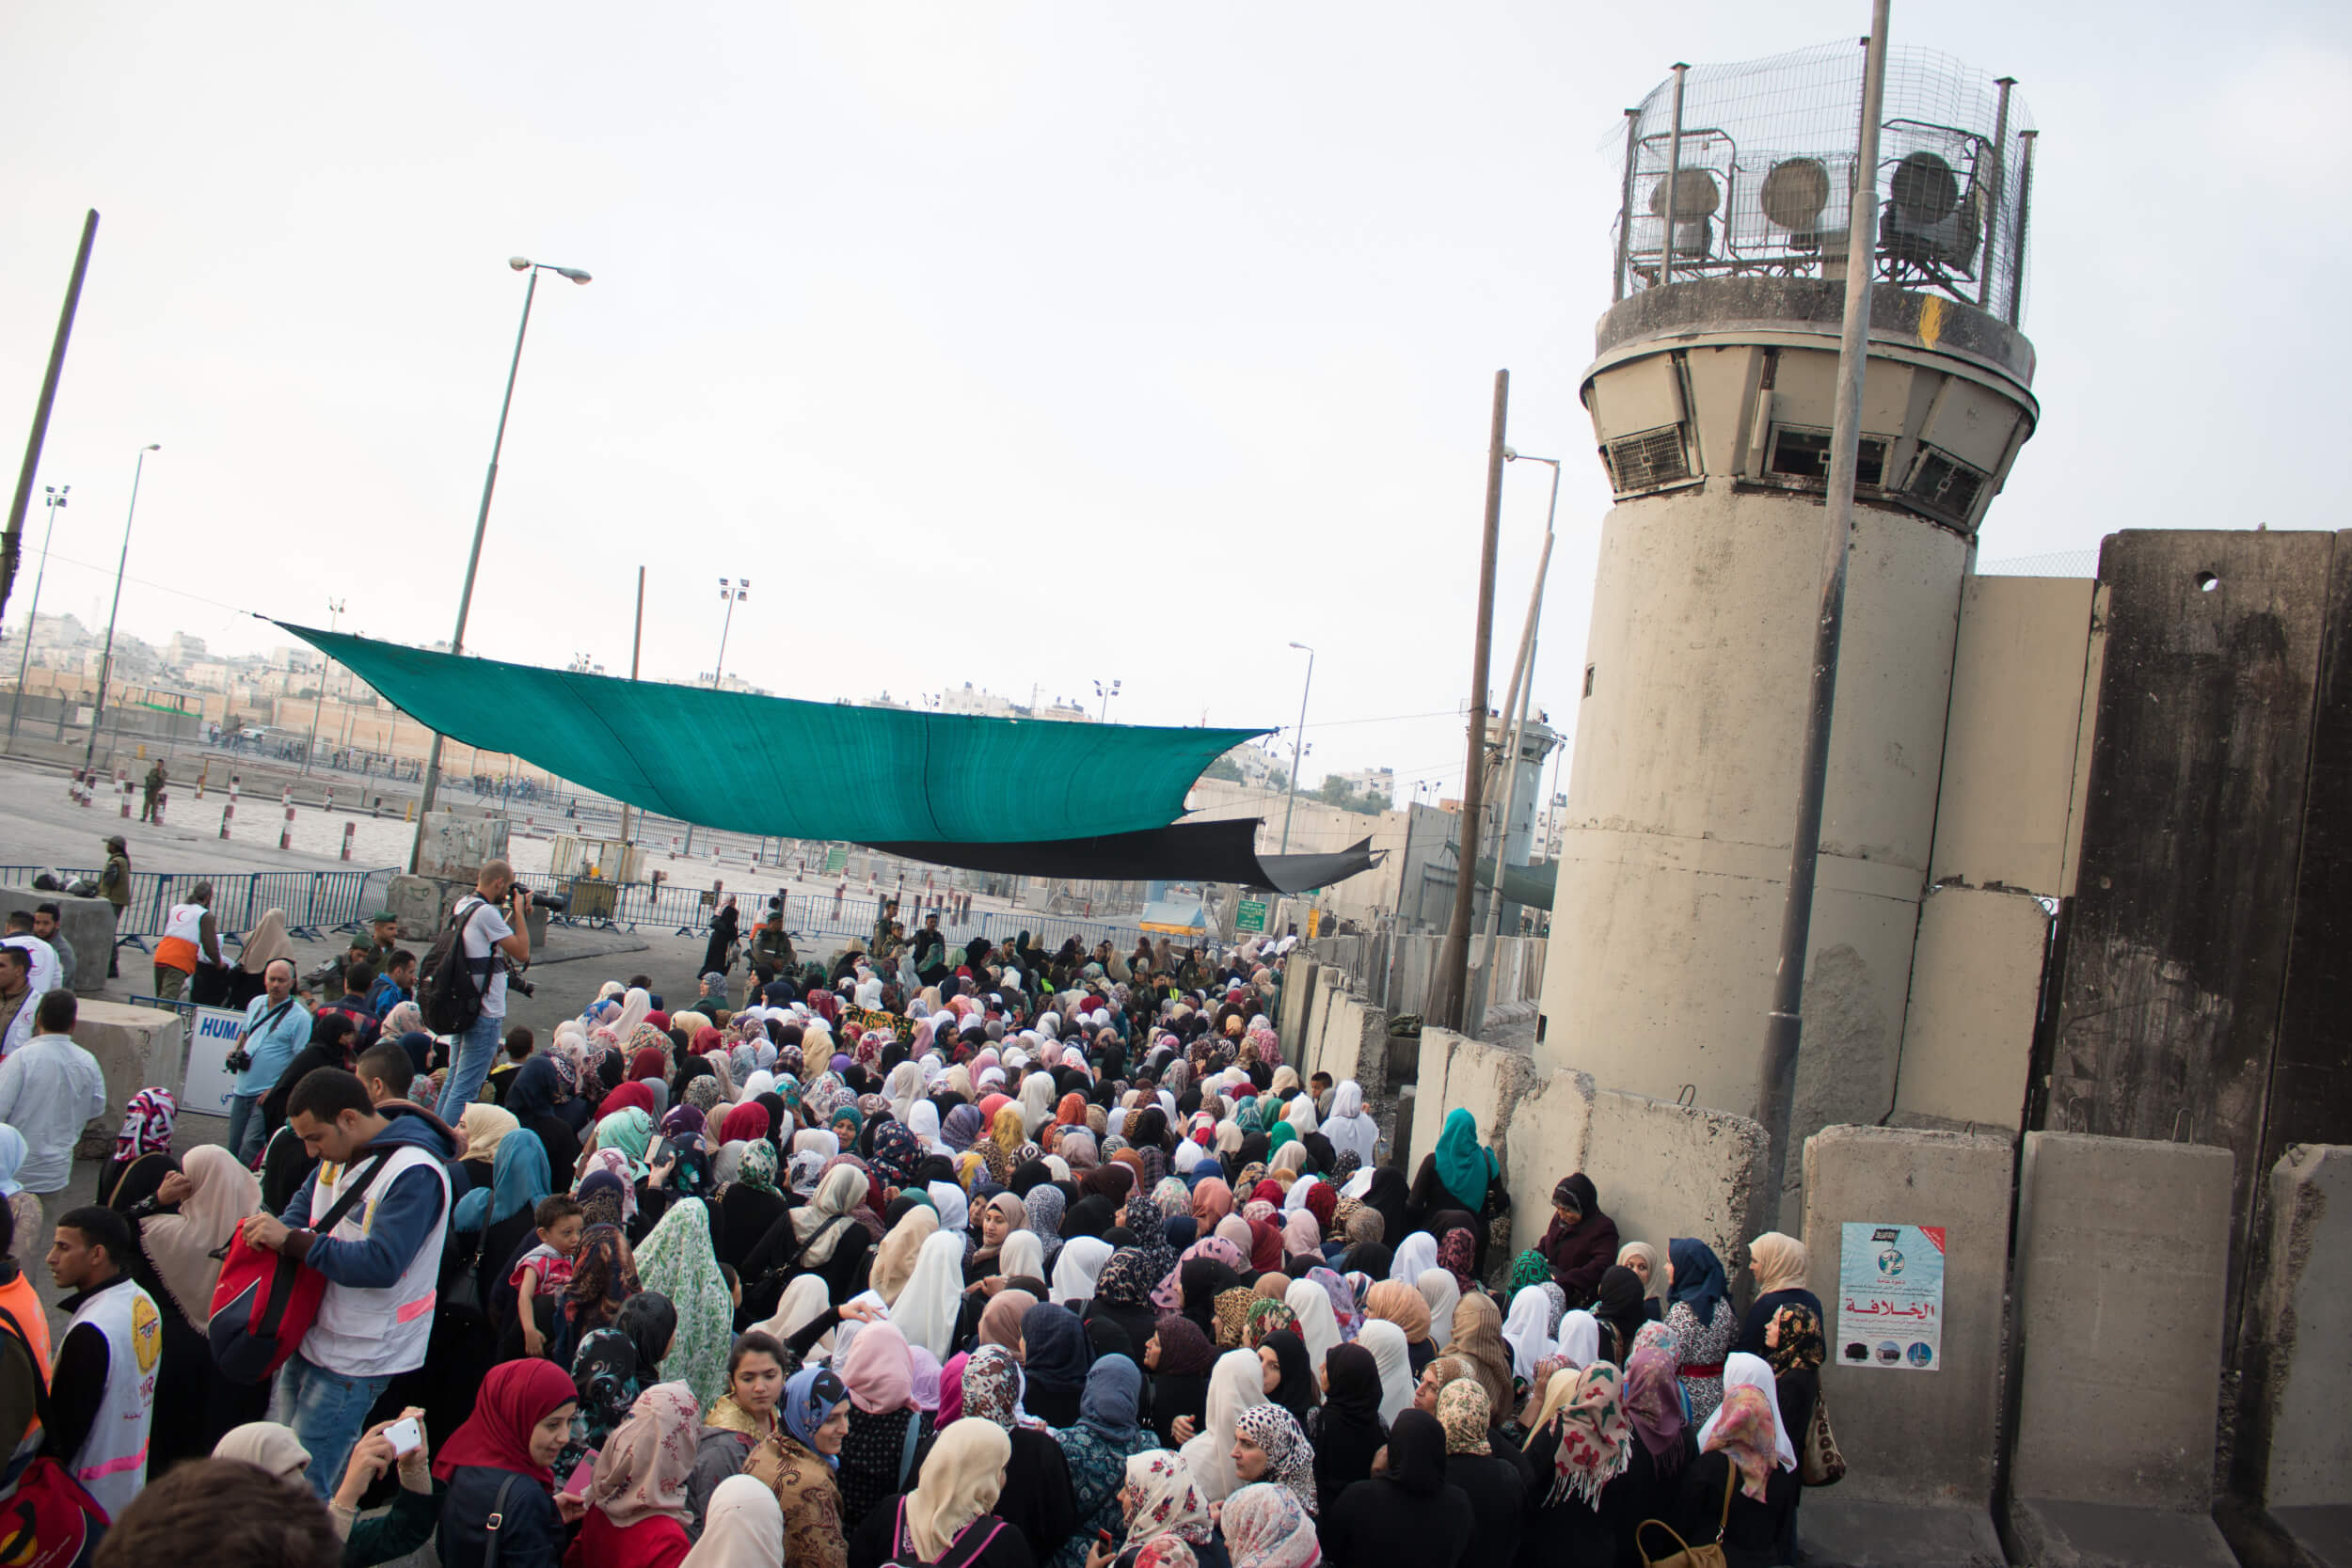 Most Palestinian women from the West Bank are allowed to cross through Qalandia without permits on Fridays during Ramadan, even though Israeli regulations stipulate that permits are needed for those under 40. (Photo: Karam Saleem)